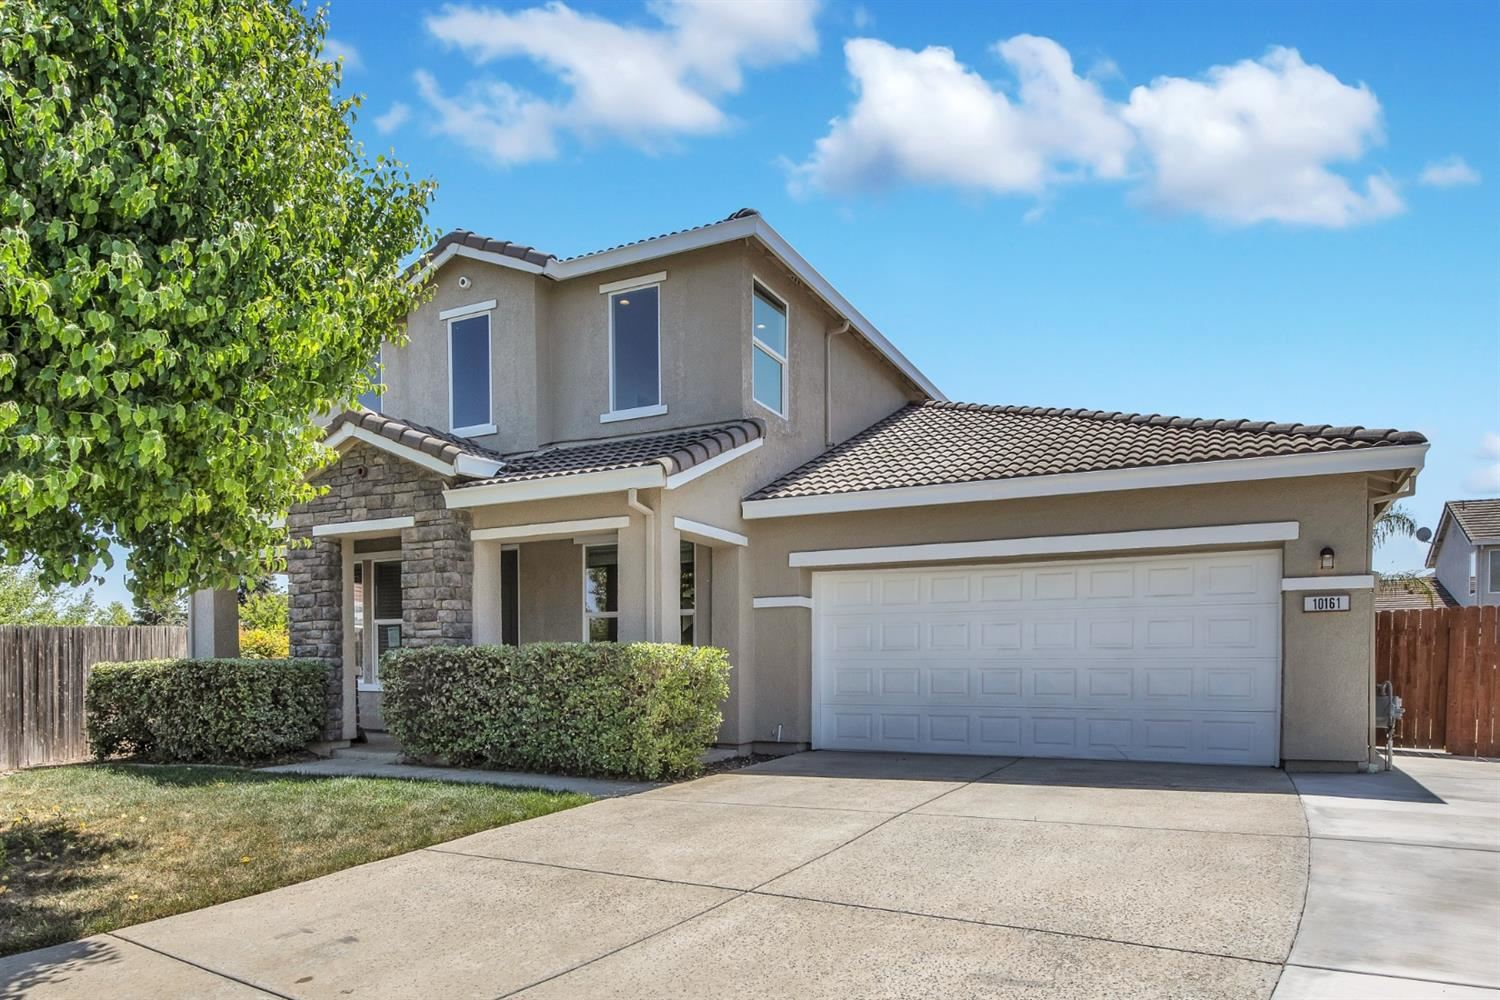 Photo of 10161 Trafton Court, Elk Grove, CA 95757 (MLS # 221026504)